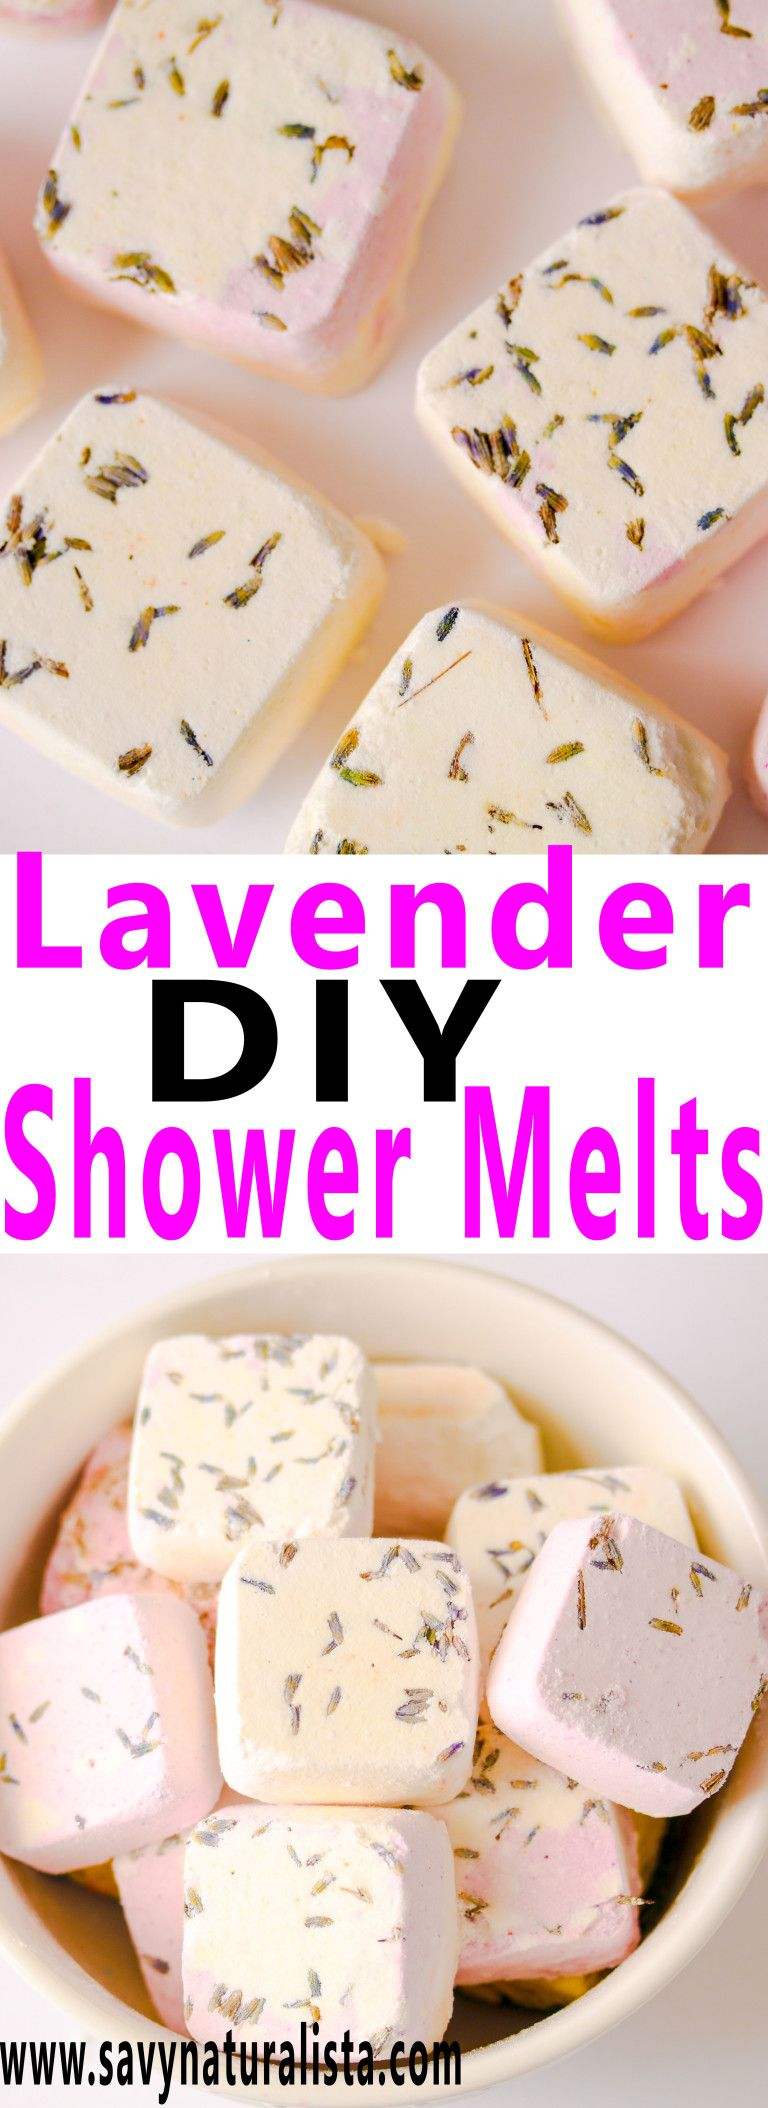 Soothing, calm and invigorating Shower melts are made with pure lavender essential oils.